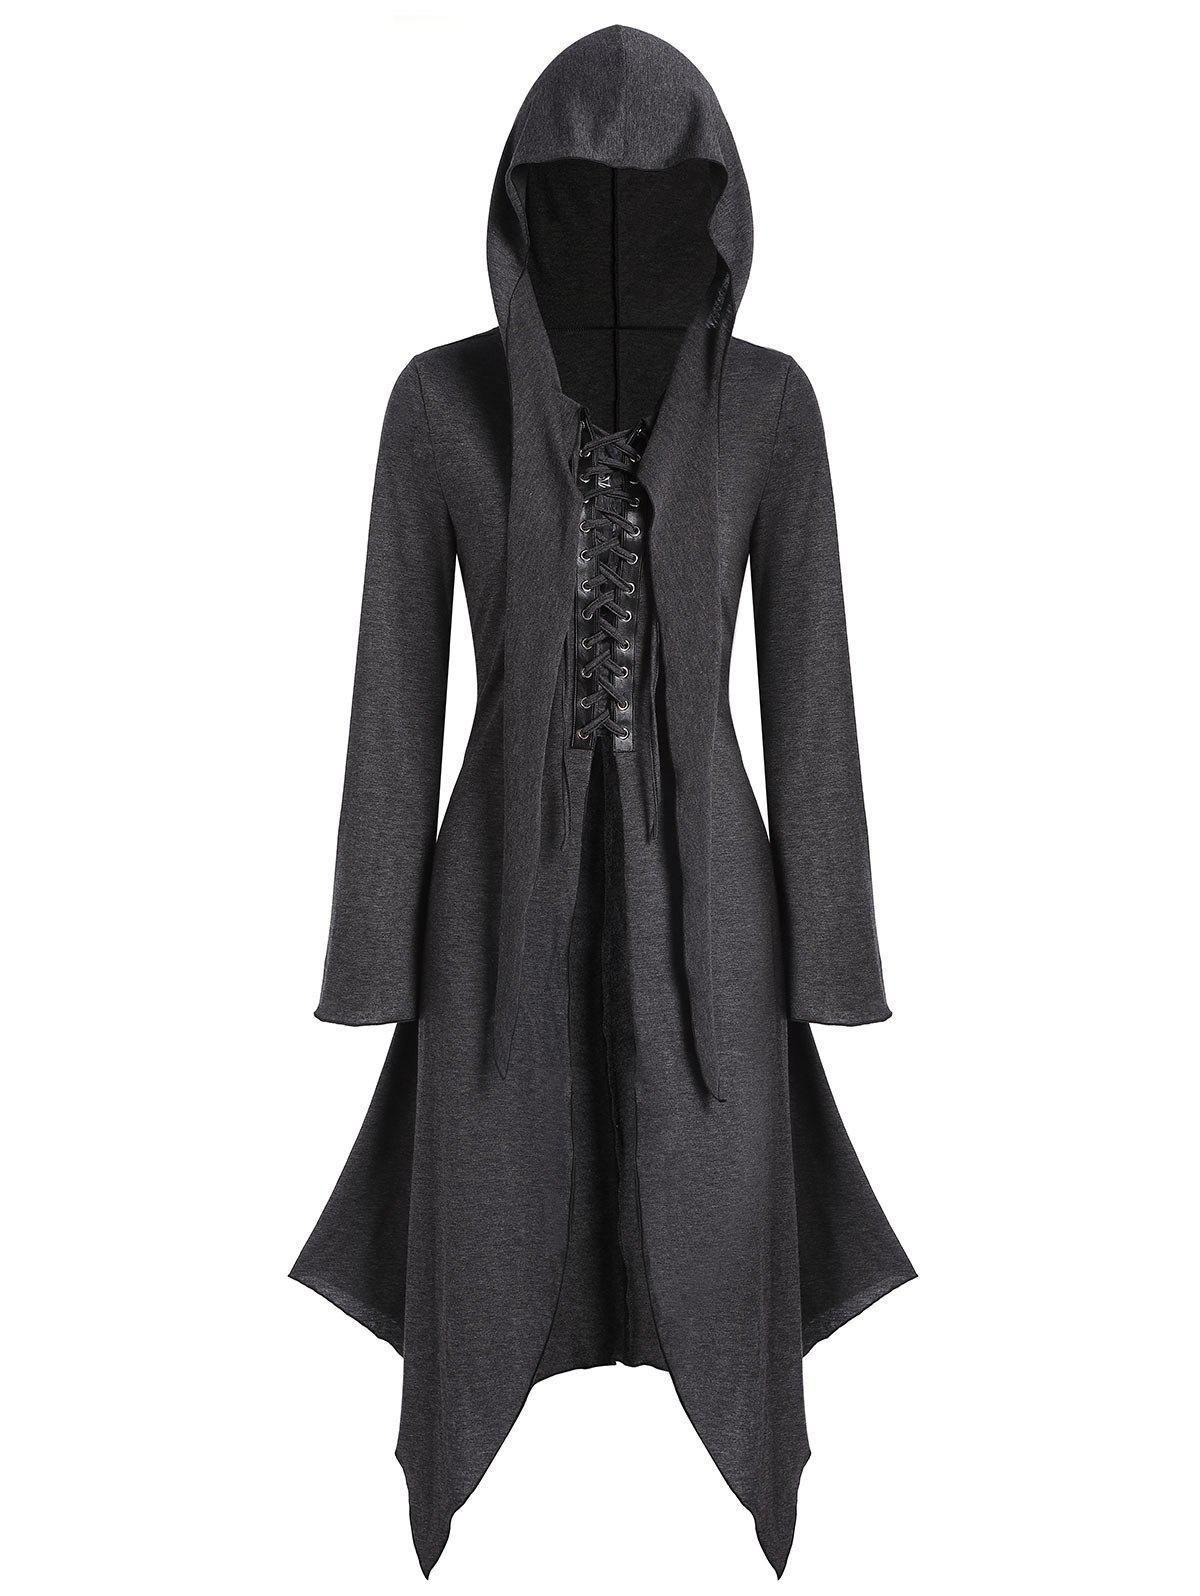 Hooded Lace-up Front Heathered Handkerchief Skirted Gothic Coat - CARBON GRAY L